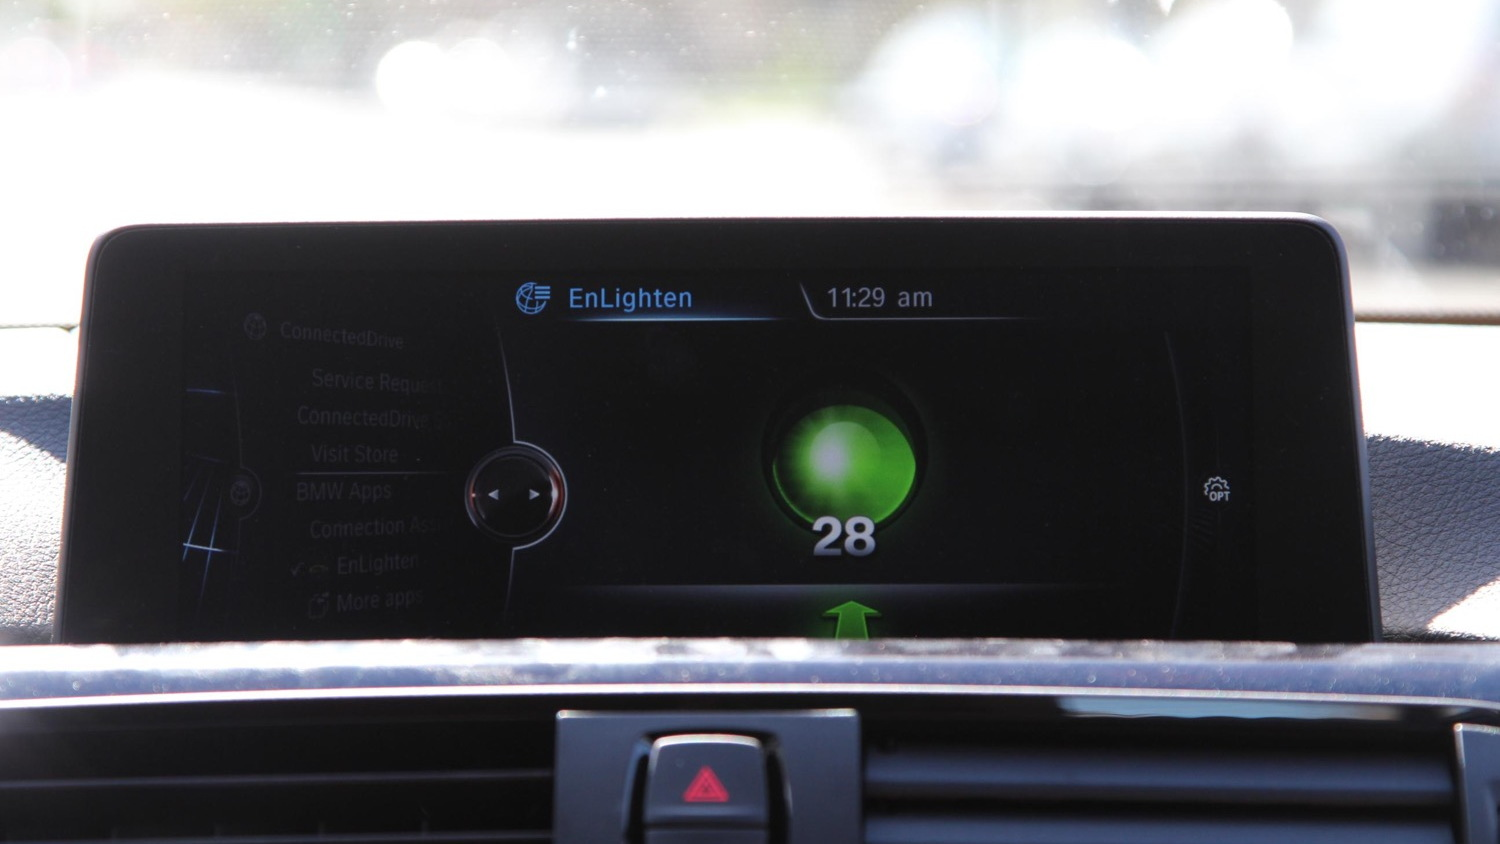 BMW EnLighten app integration